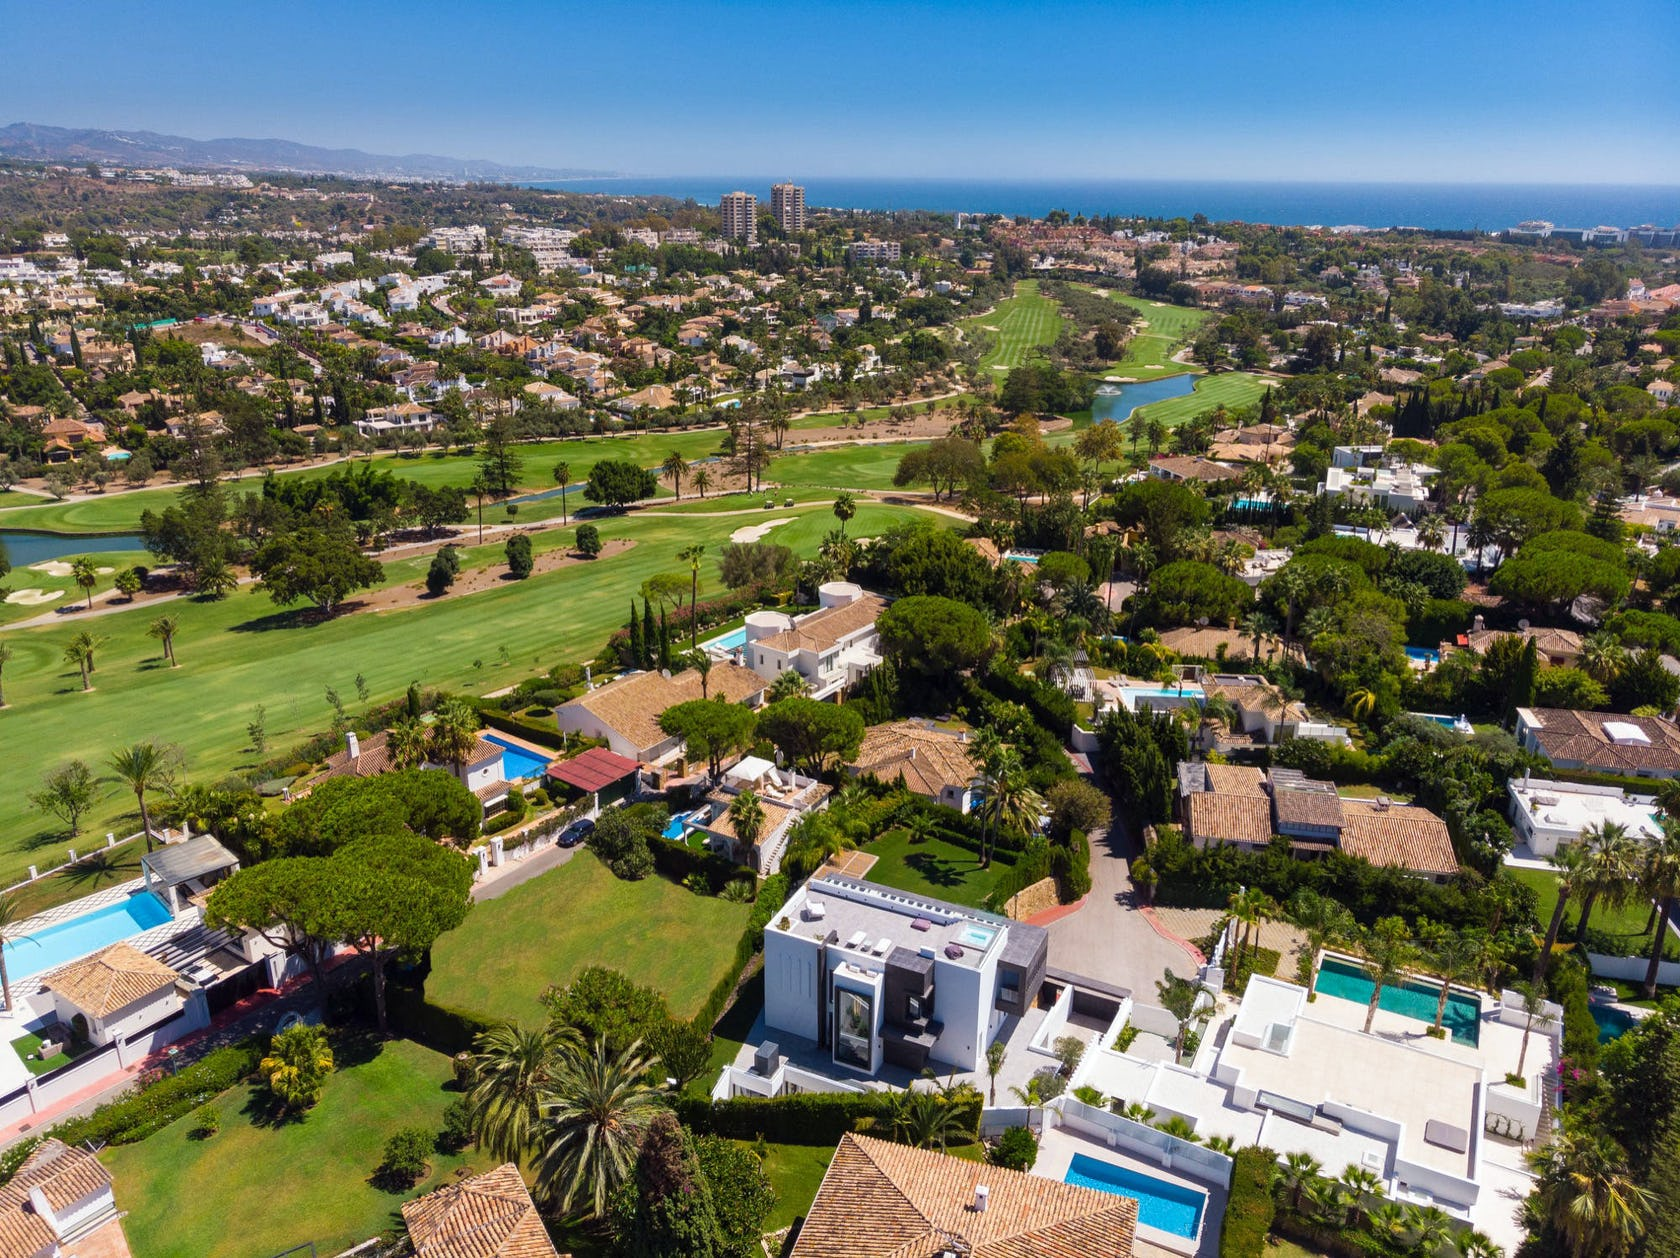 landscape outdoors nature scenery aerial view urban neighborhood building